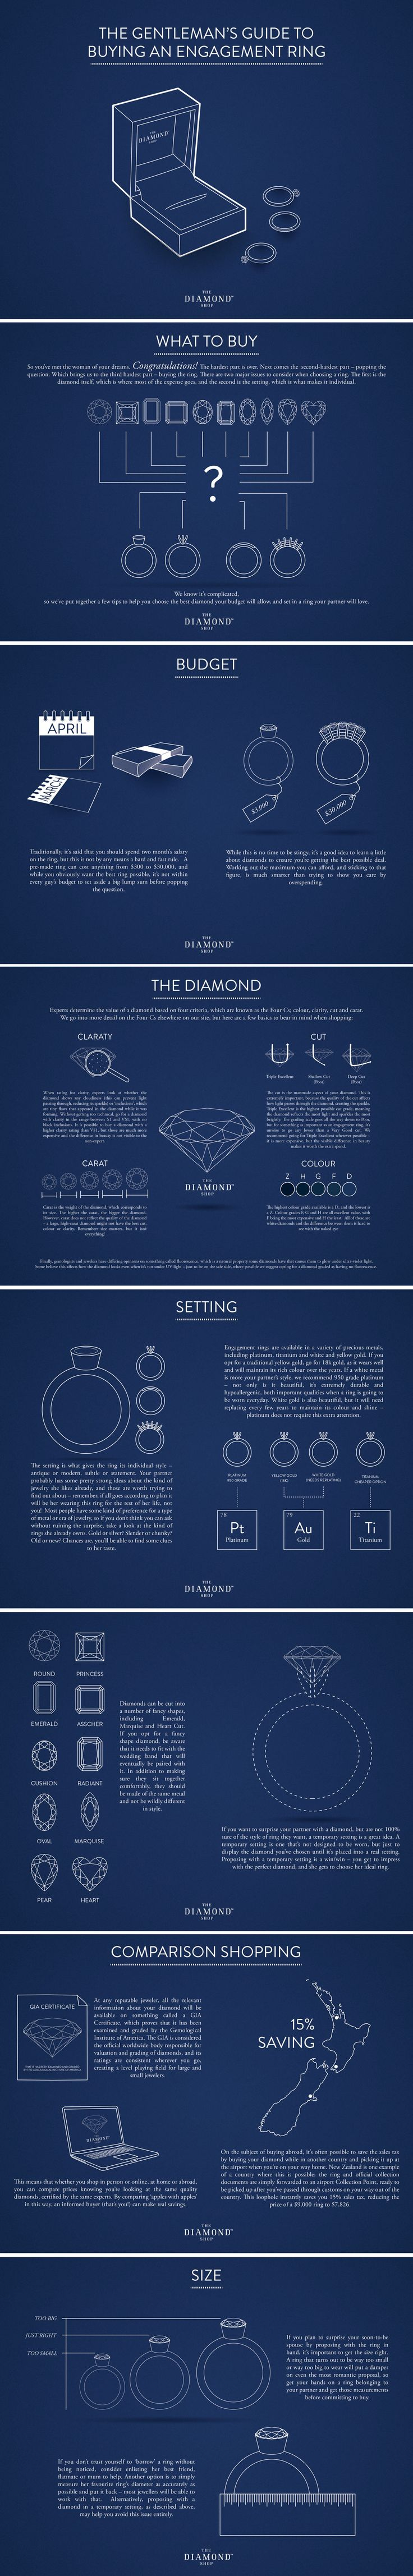 The Gentleman's Guide to Buying an Engagement Ring | Visual.ly